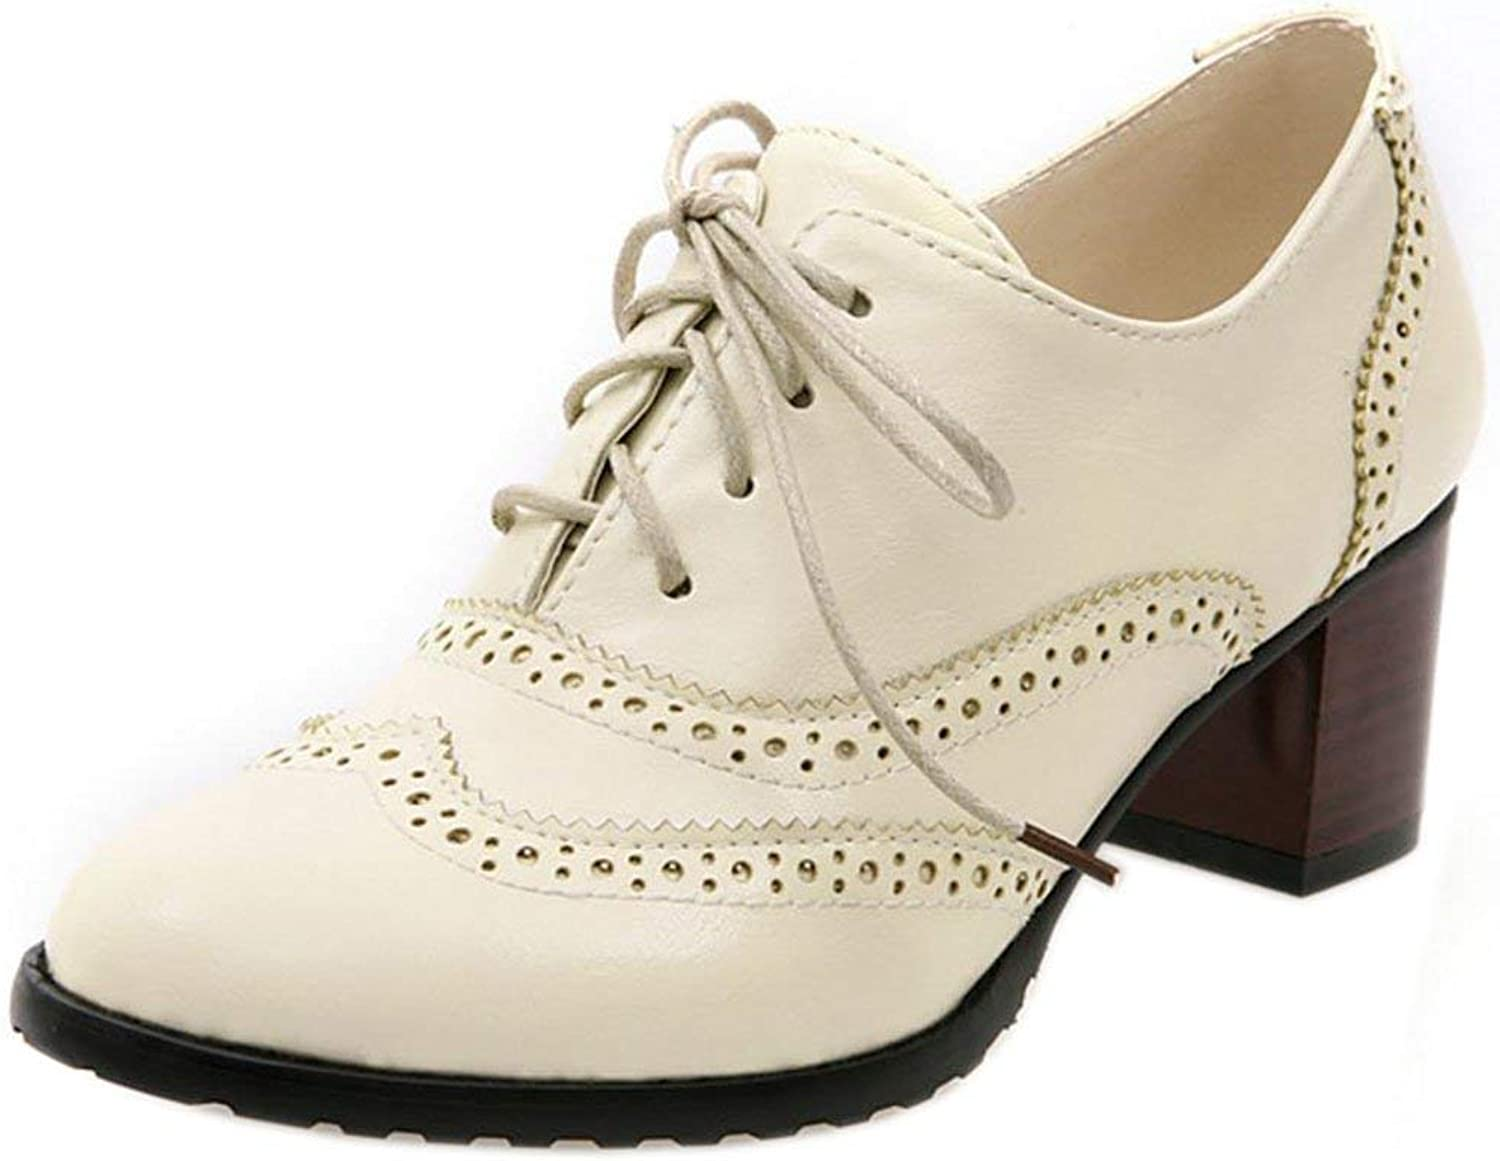 Unm Women's Classic Oxford shoes Mid Heel